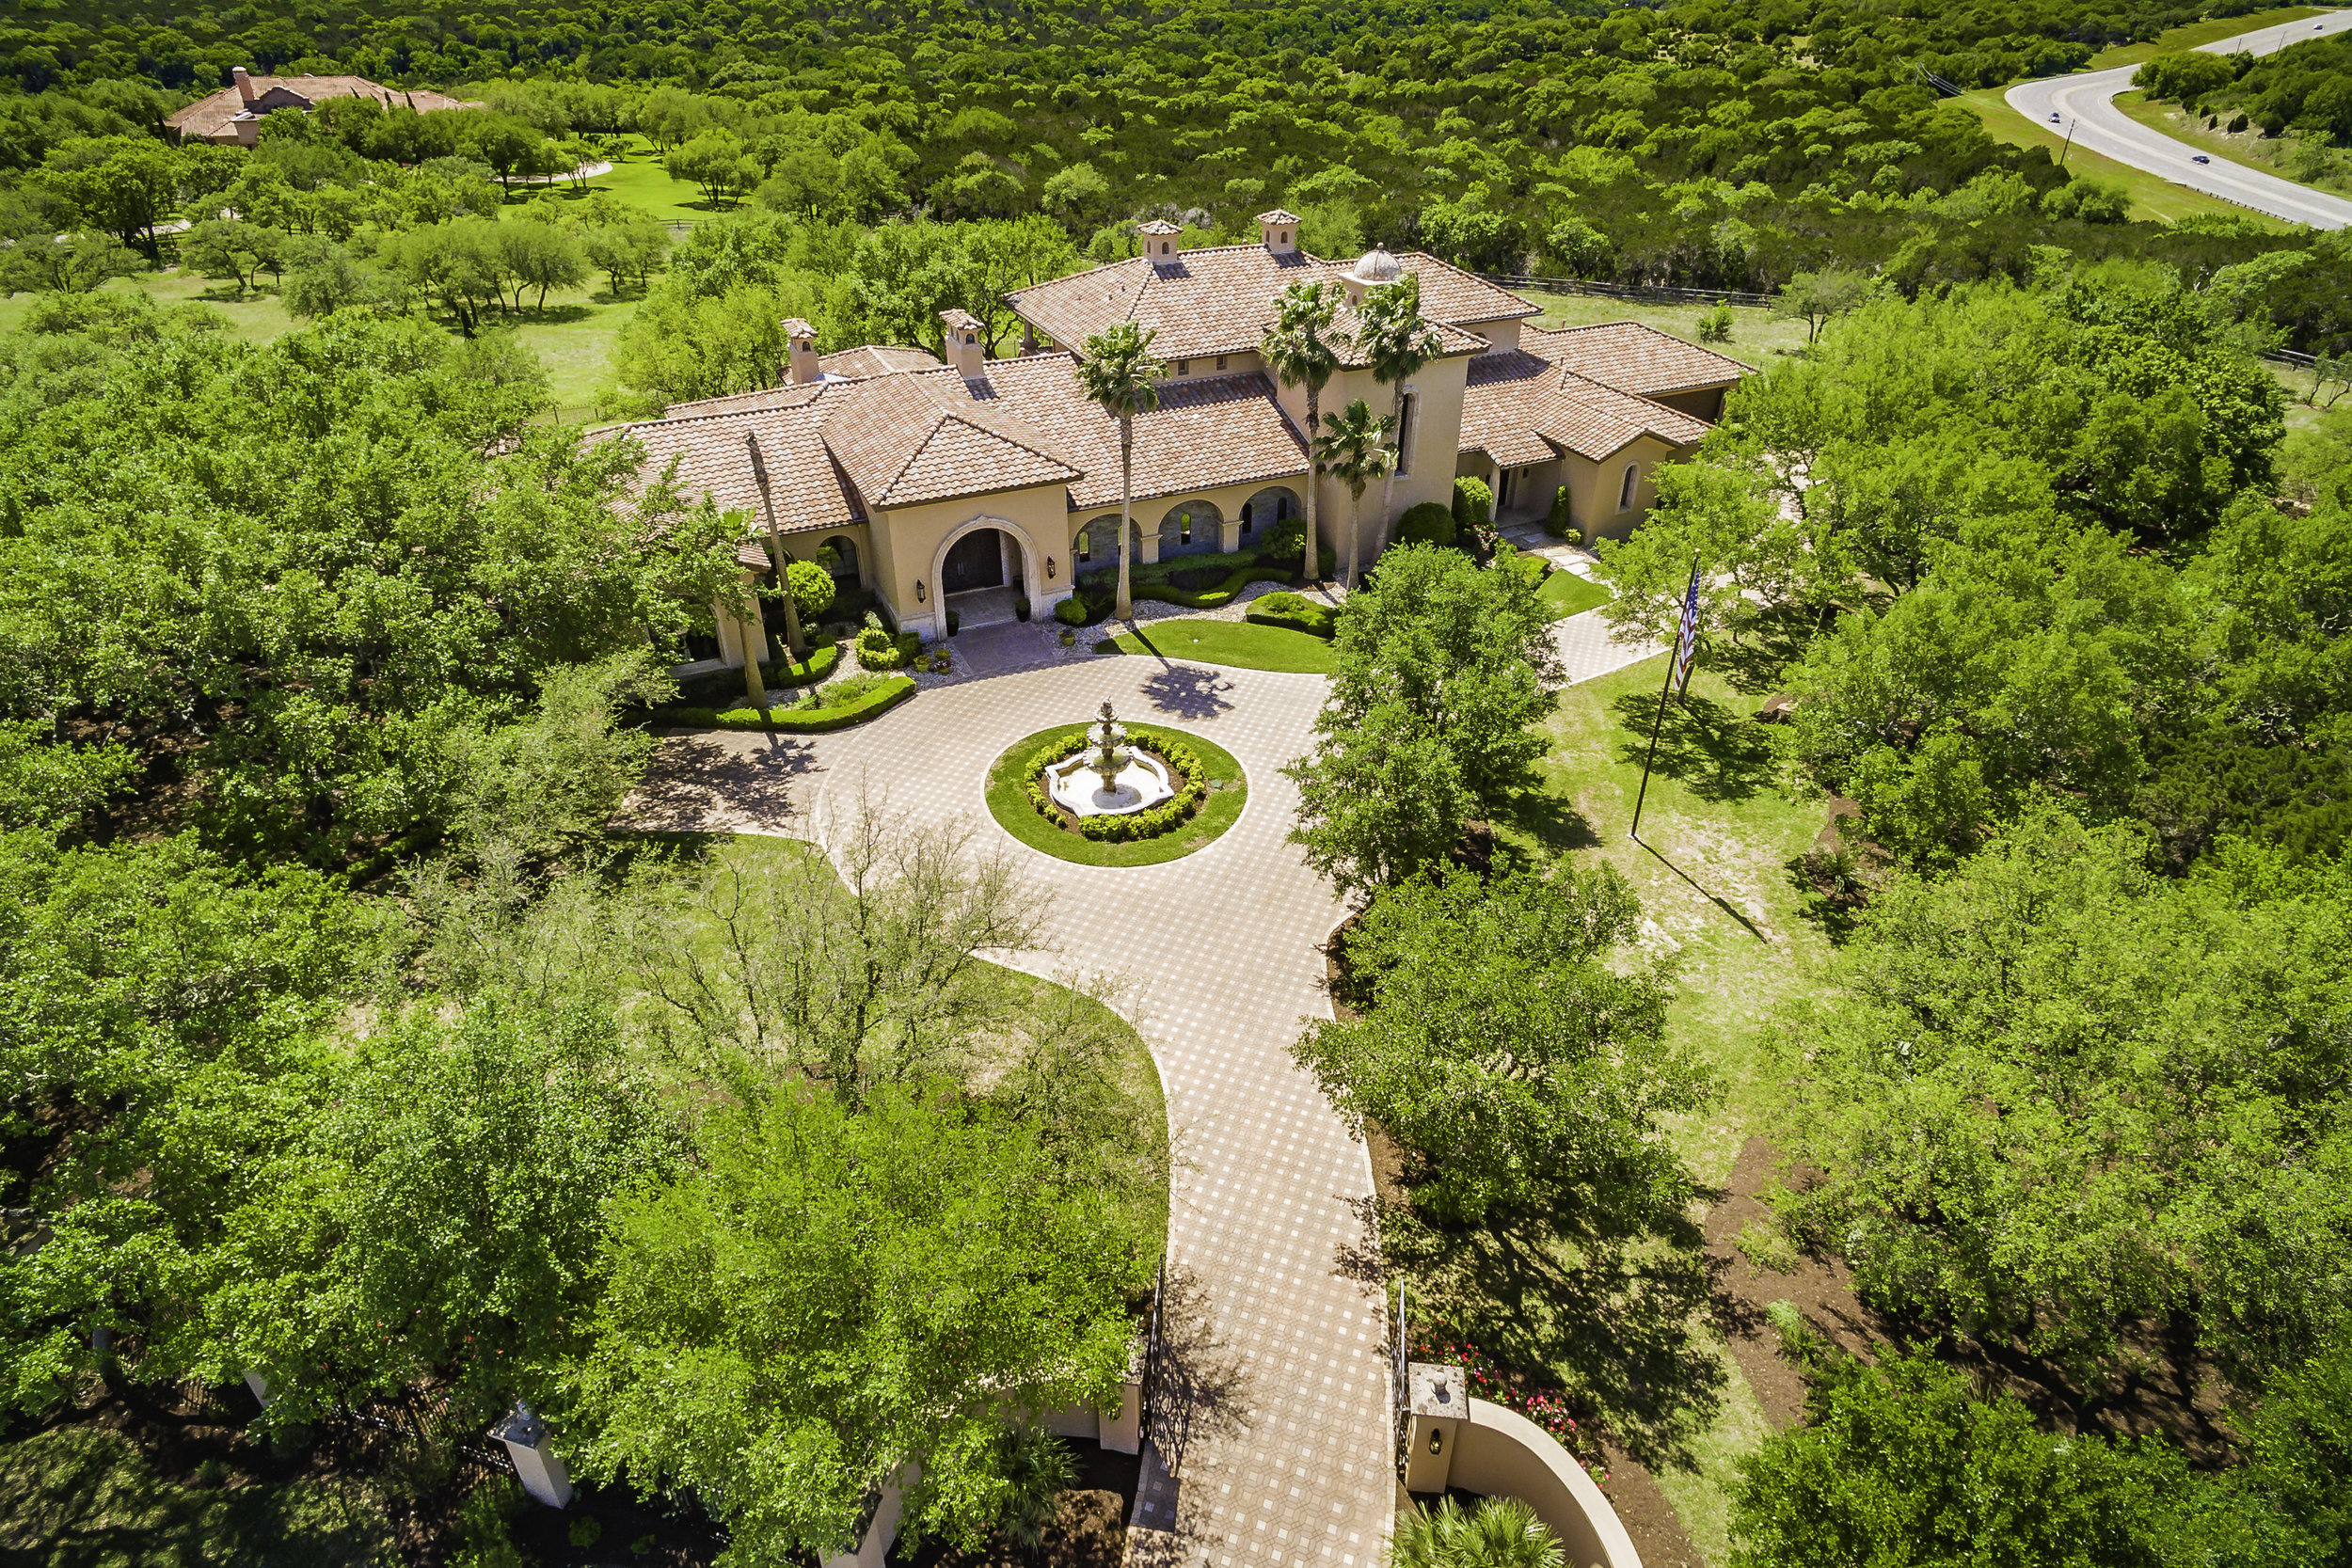 2502 Dominion Hill Aerial - Valerie DiFabio - April 2019-5.jpg